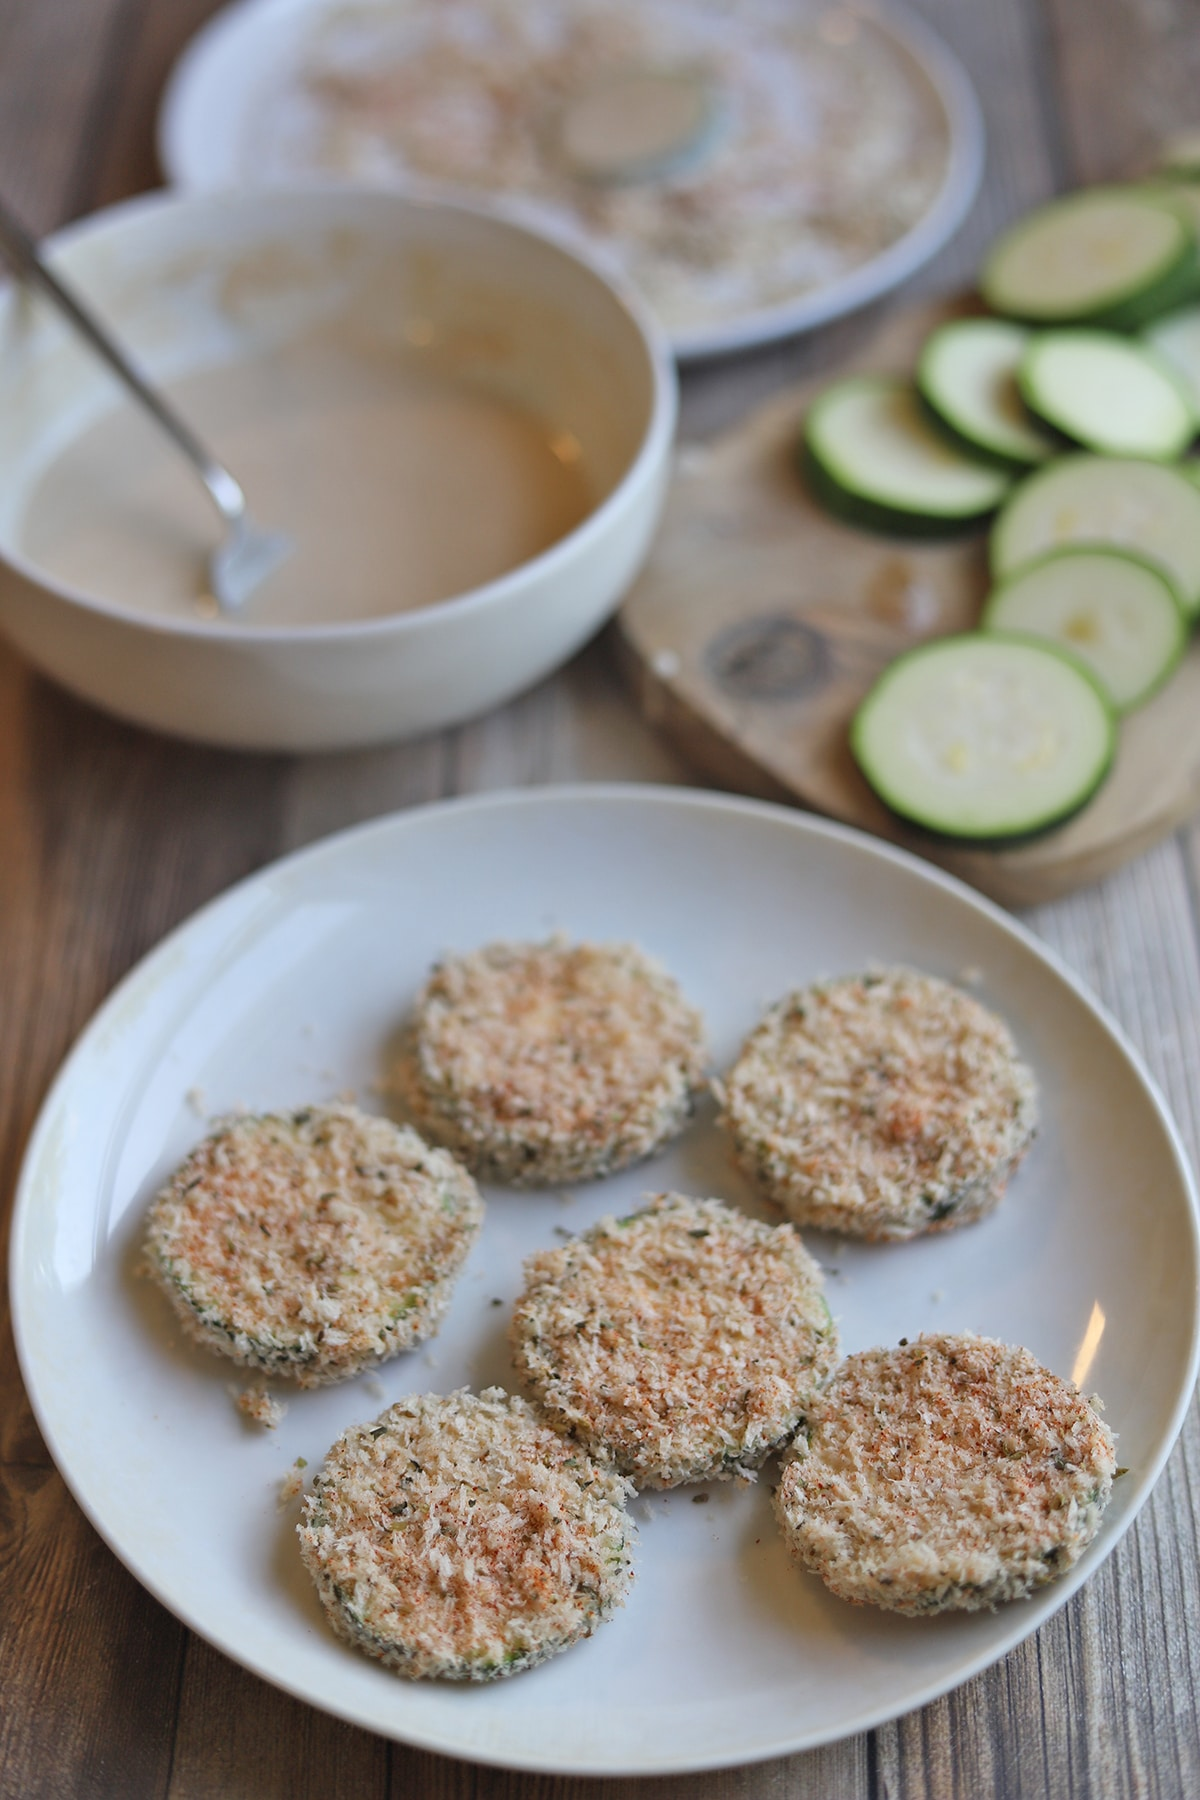 Zucchini slices coated in breadcrumbs in breading station.